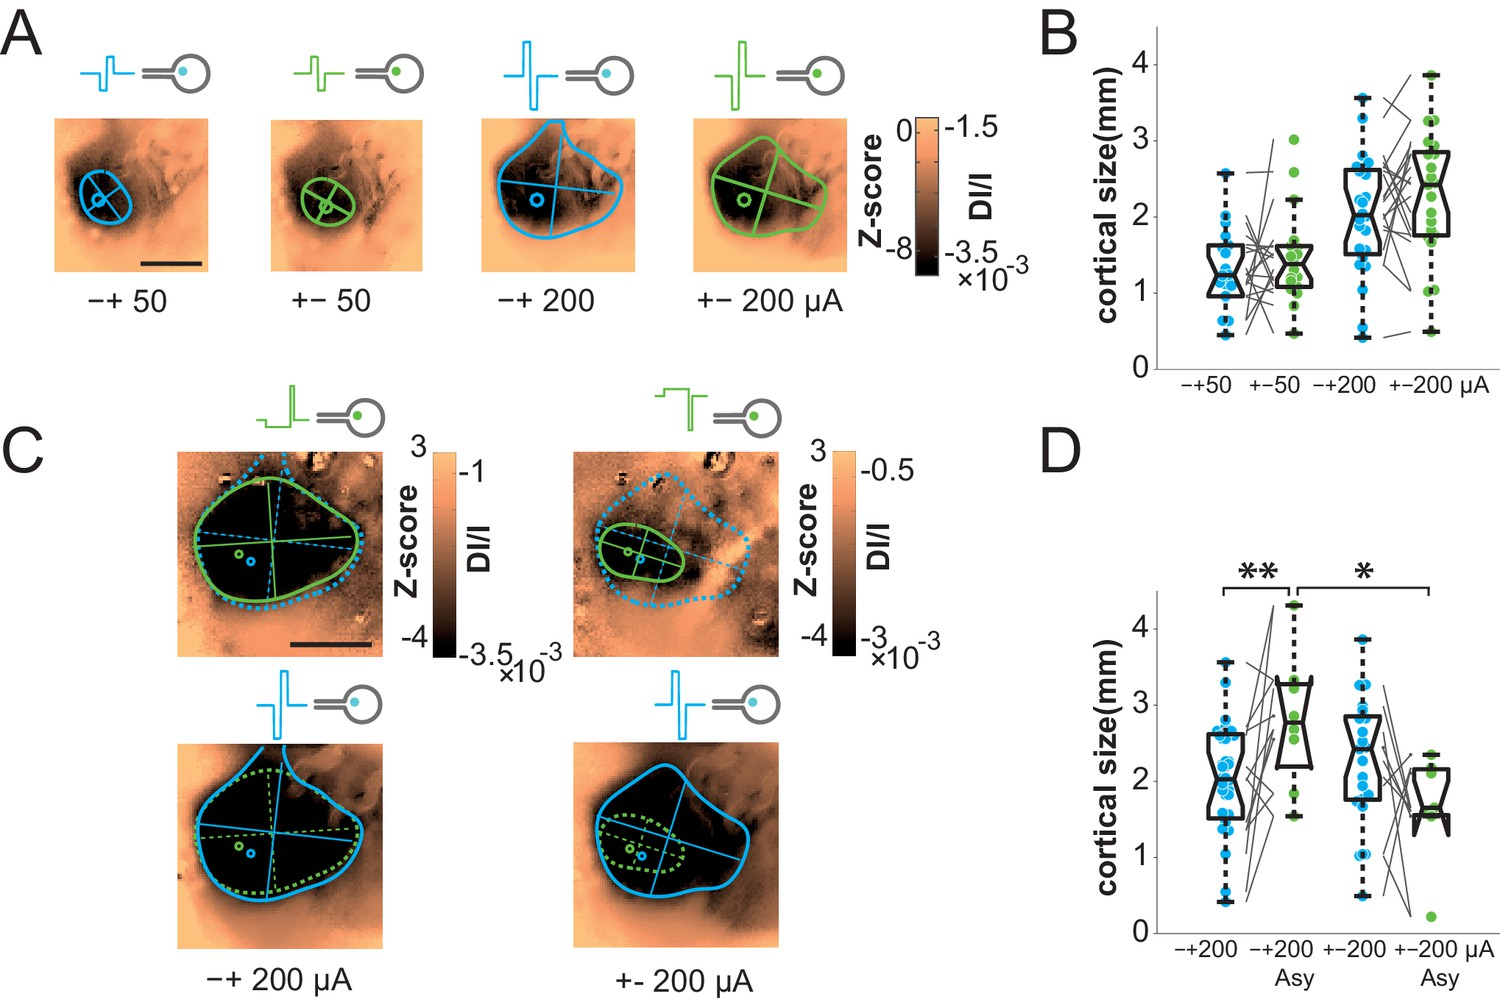 Probing the functional impact of sub-retinal prosthesis   eLife